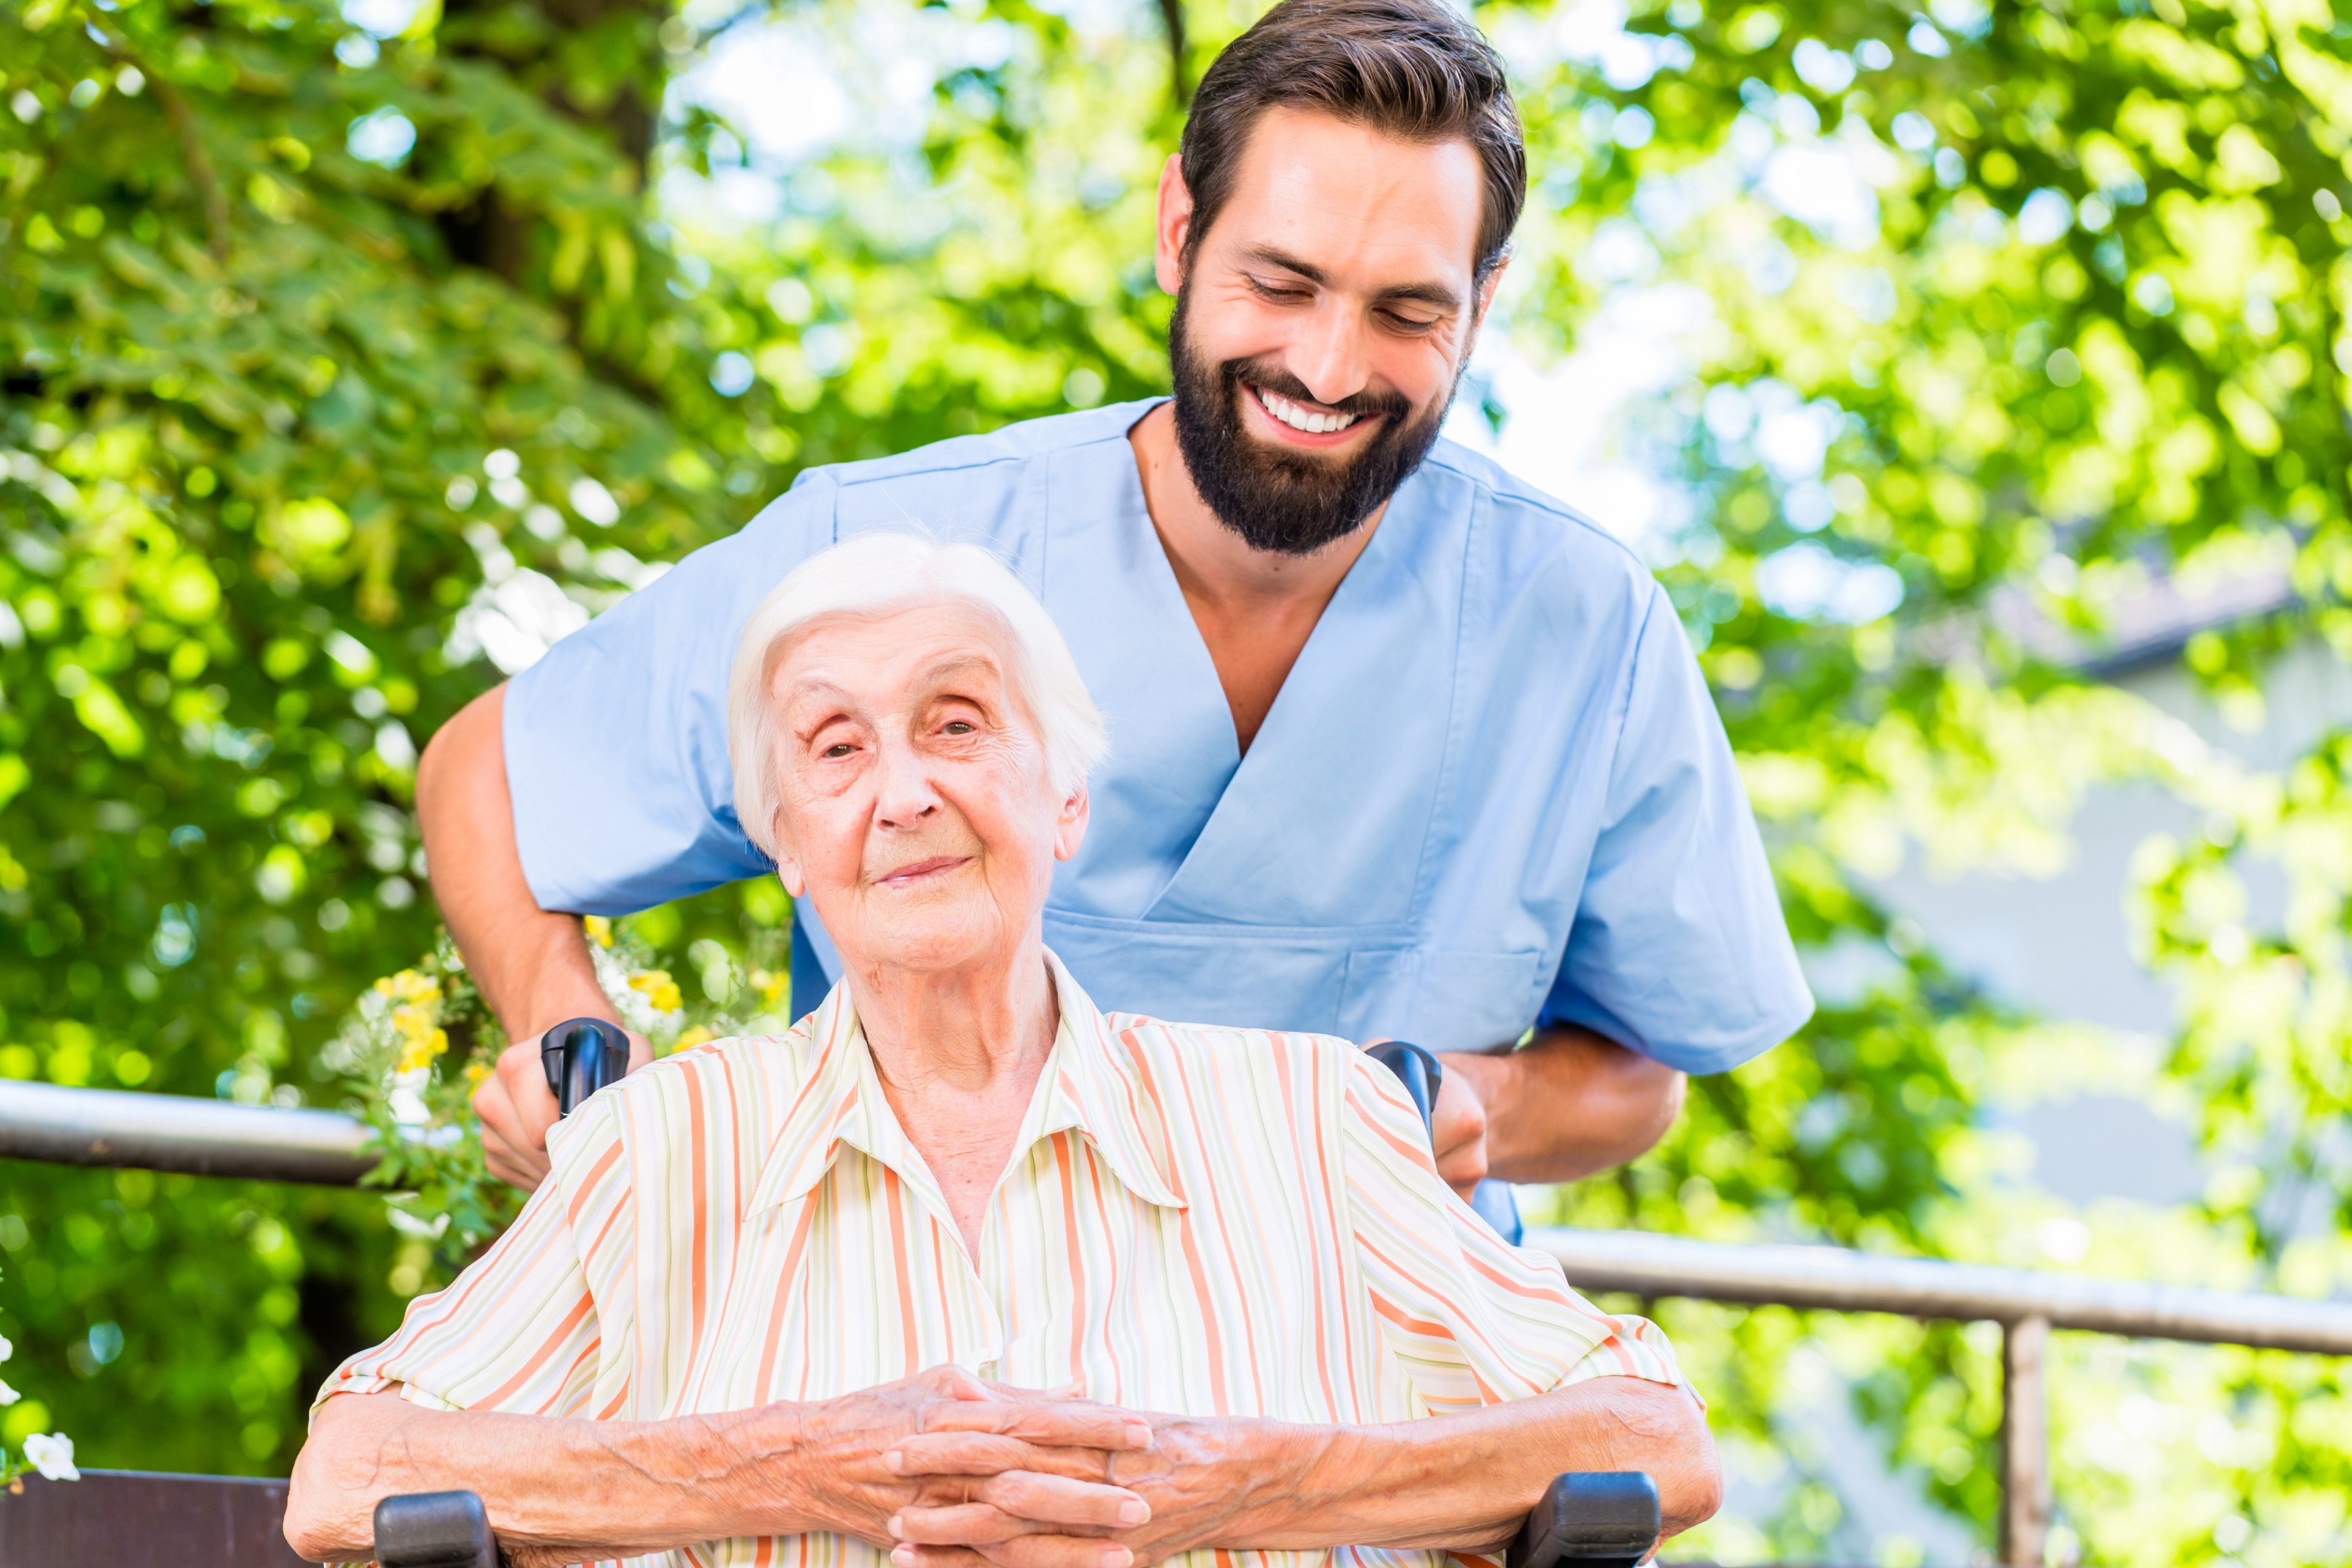 Hiring a Caregiver for In-Home Health